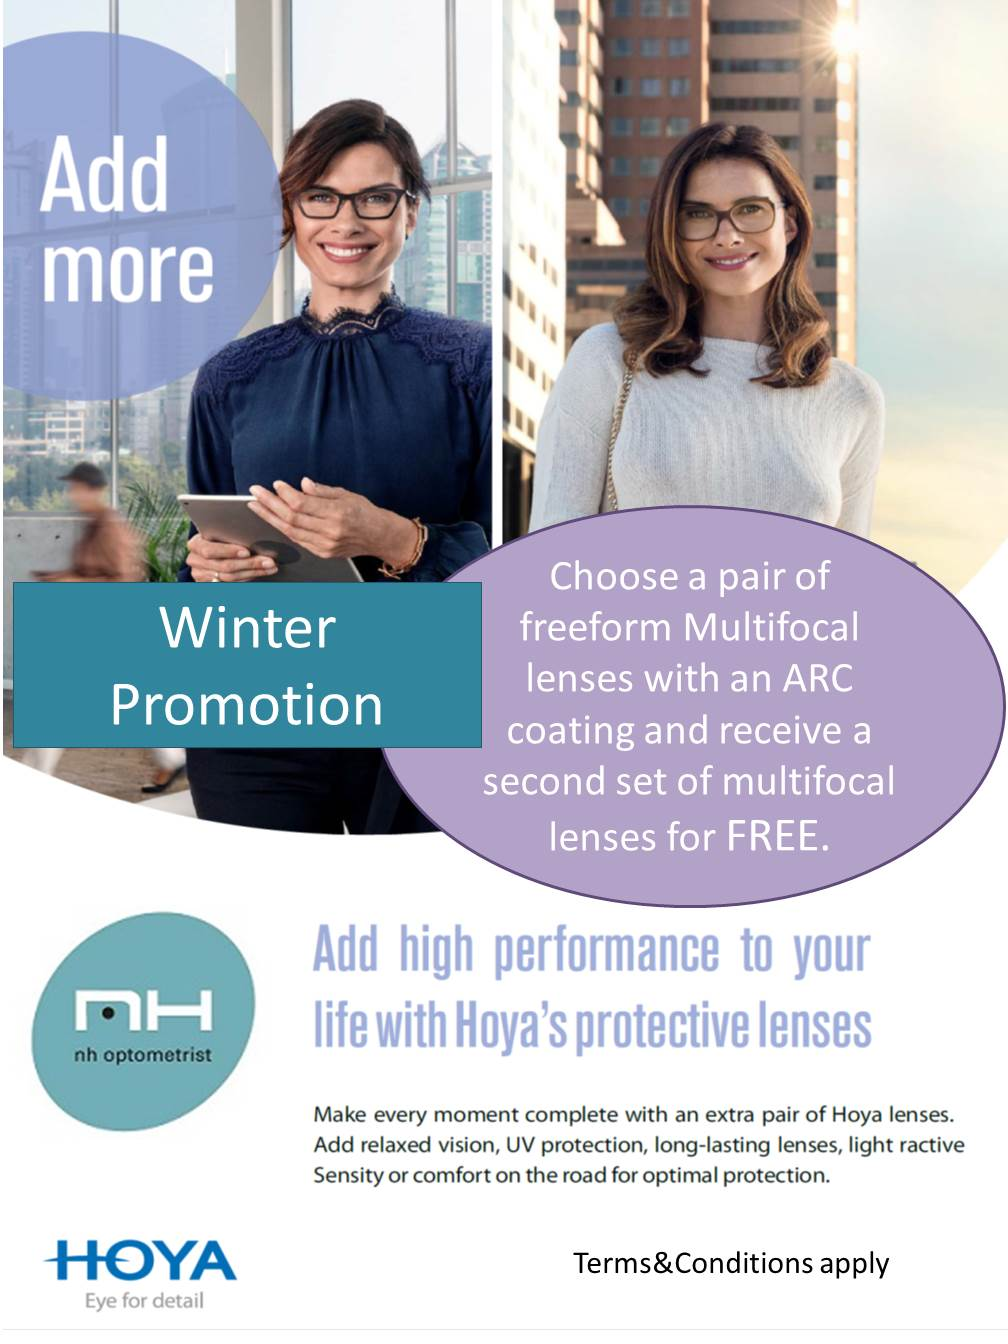 Free multifocal lense promotion at NH Optometrist Cape Town